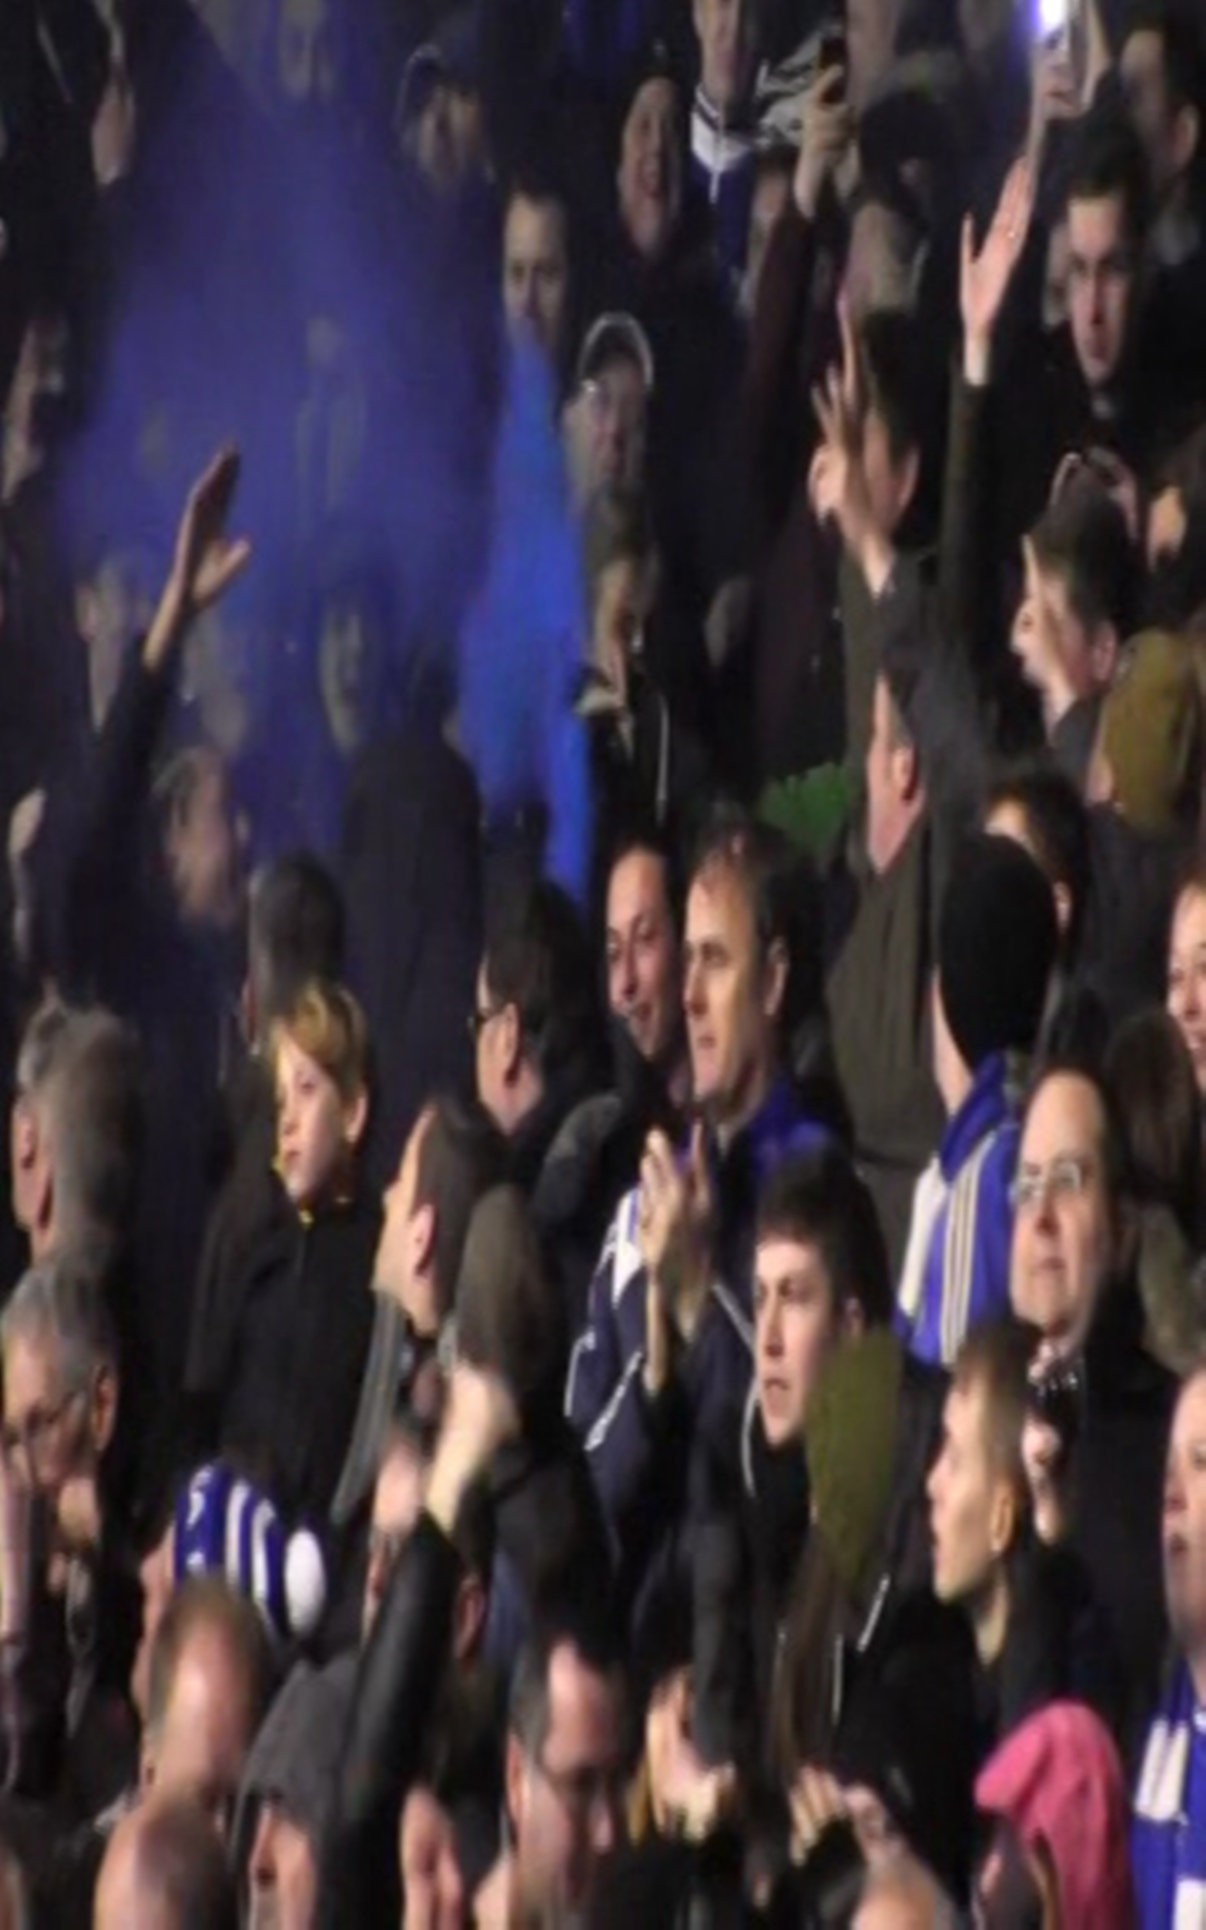 VIDEO: The moment of madness when two football fans celebrated goal at Saints match